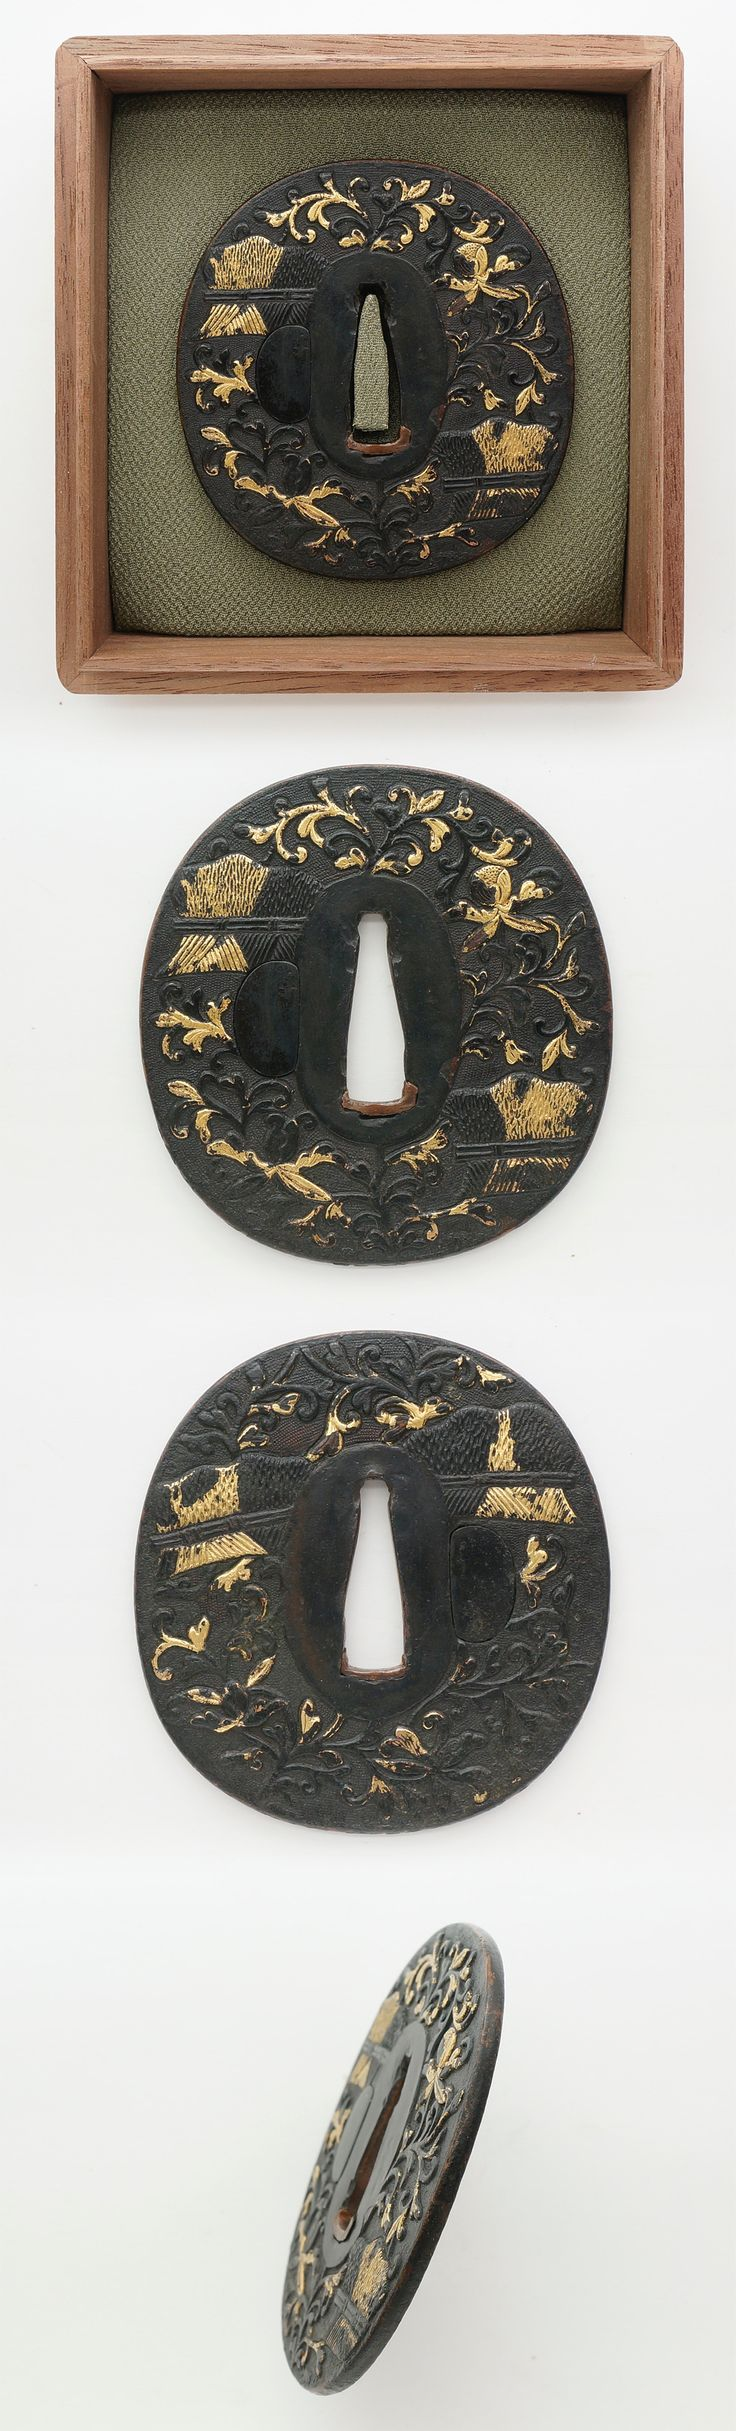 Azuchi Momoyama period Special feature : Brushwood fence design carved on Yamagane Nanakoji plate and inlaid with gold. Brushwood fence has a meaning for boundary between 'sanctuary' in Japanese Shinto shrine.